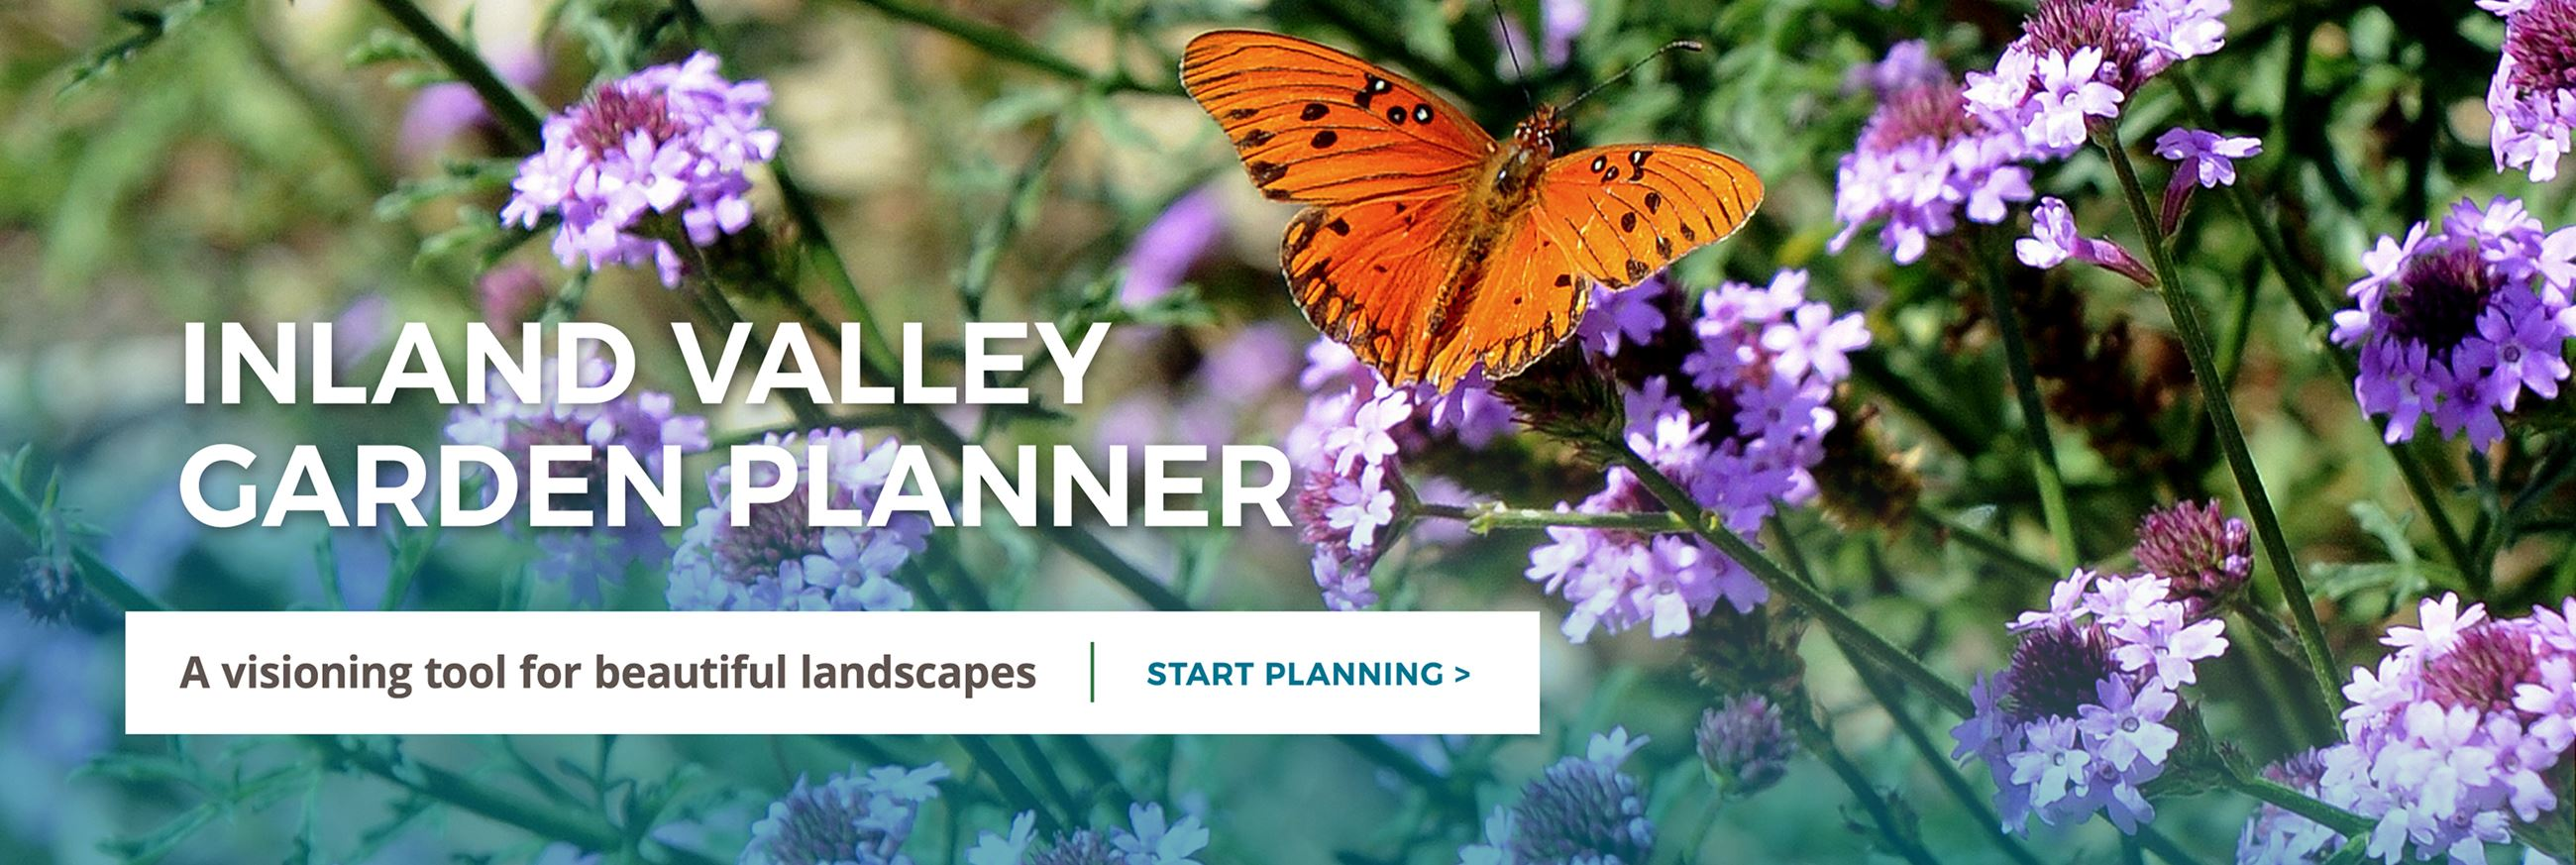 Inland Valley Garden Planner. A visioning tool for beautiful landscapes. Click to start planning.